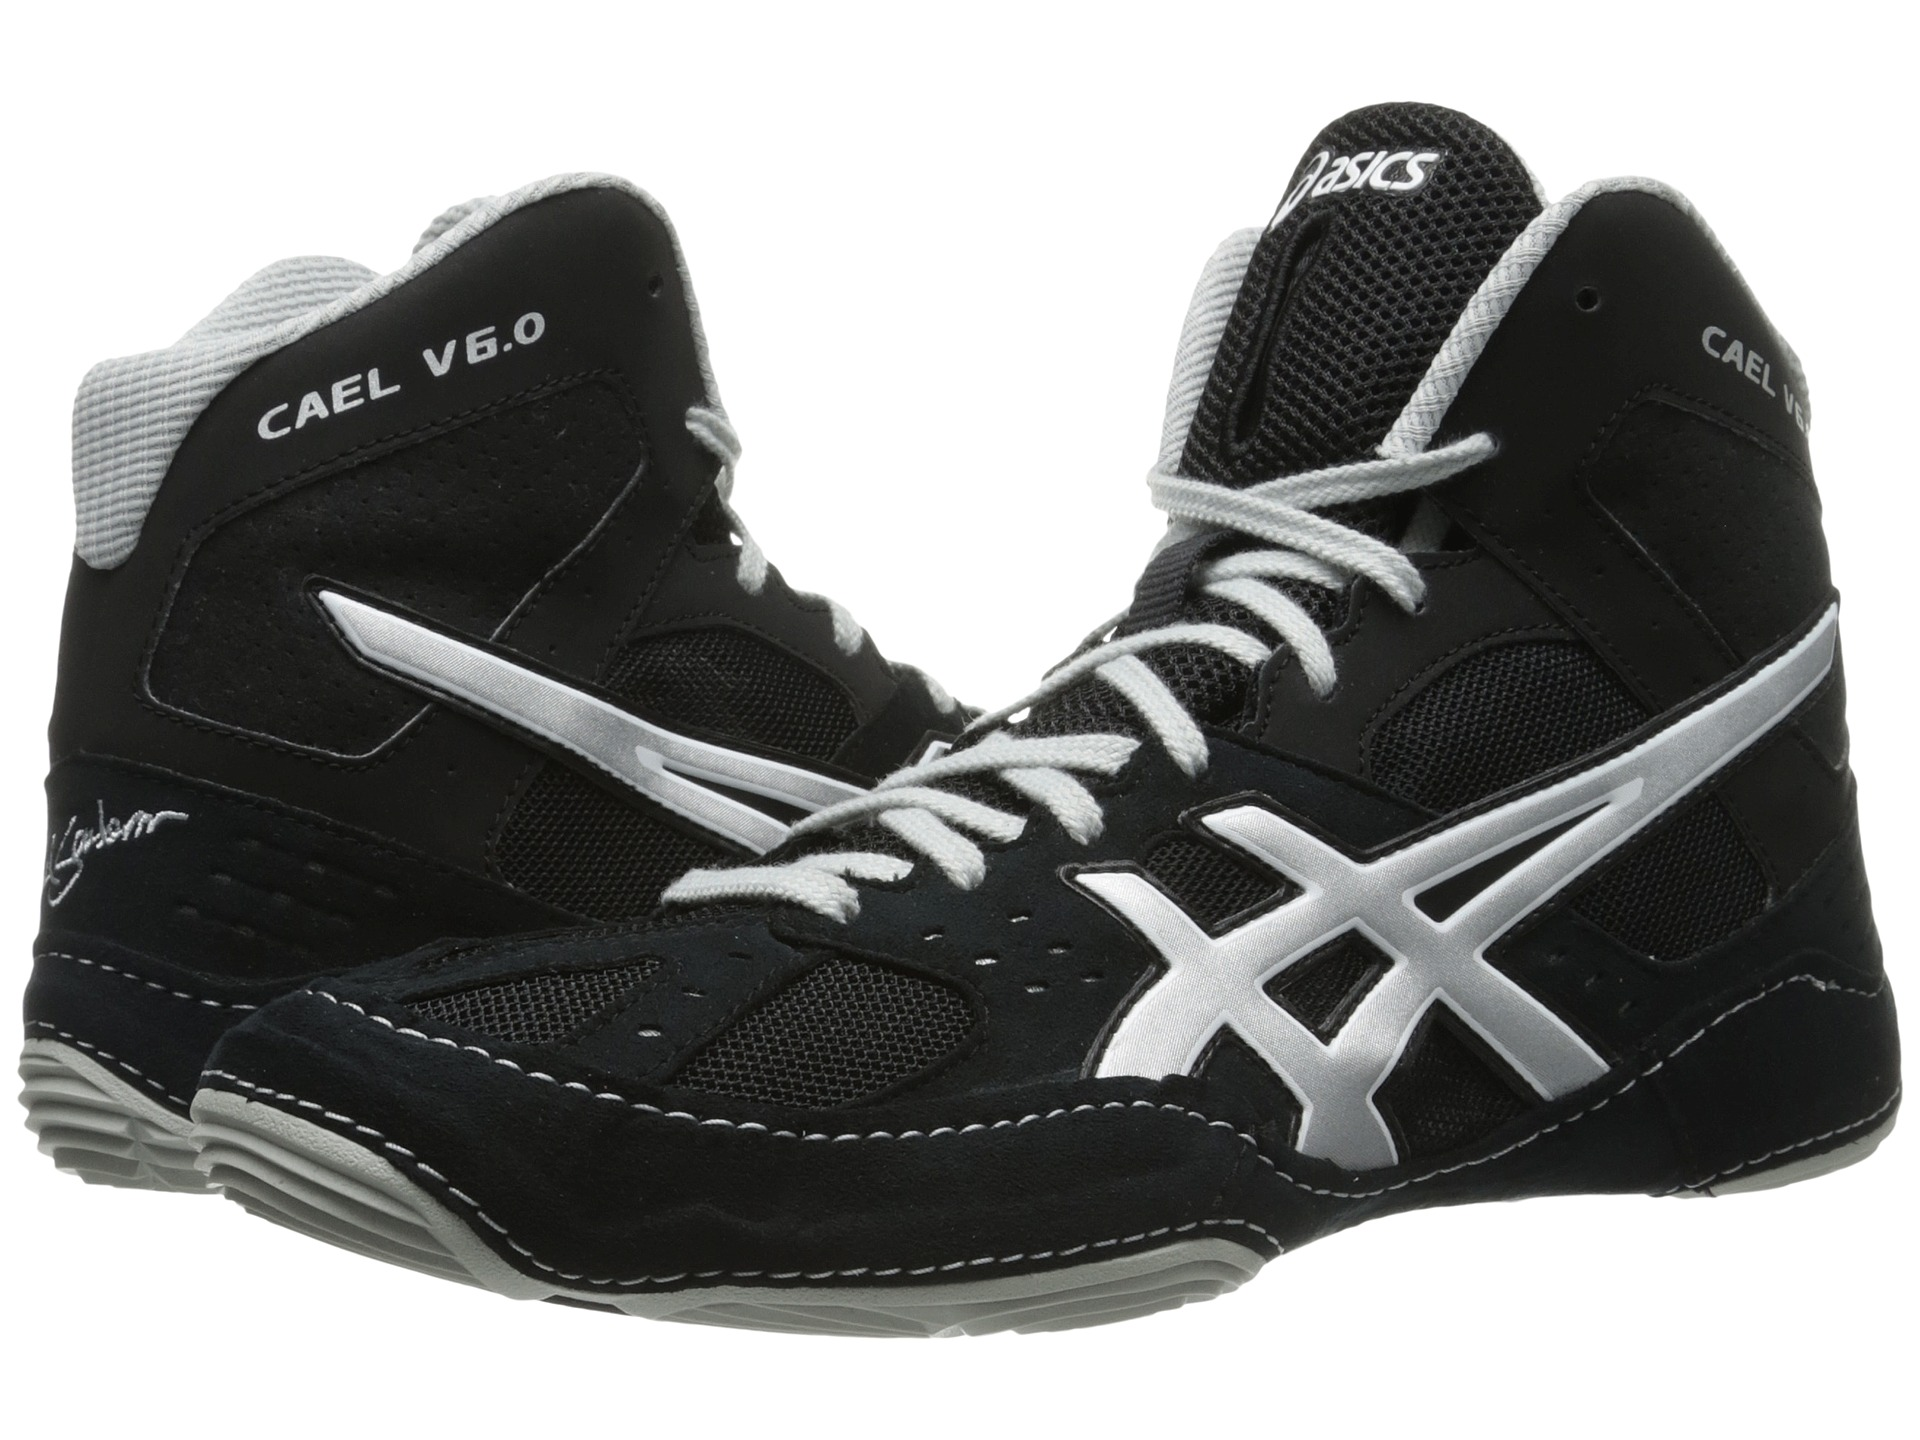 asics cael v6.0 wrestling shoes